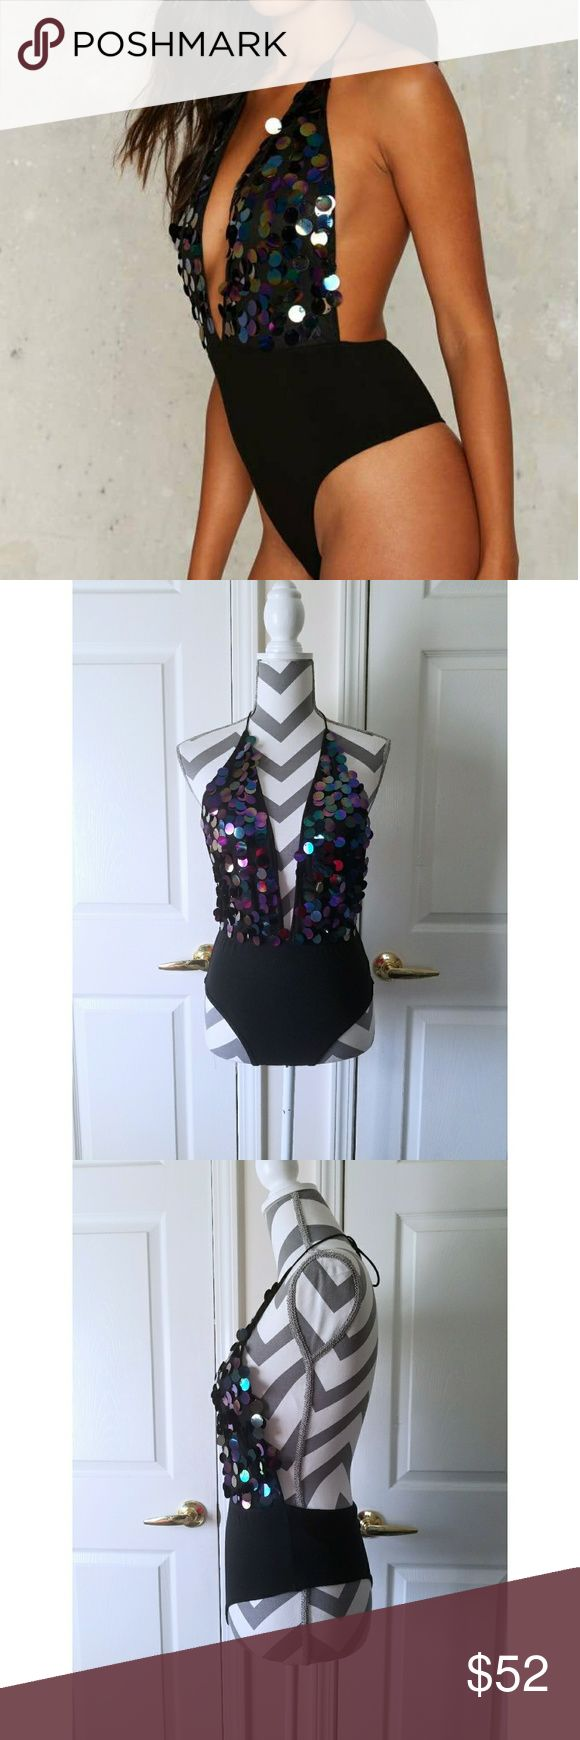 🎉HP🎉 Motel Ariel Sequin Bodysuit - Iridescent disc sequins  - Adjustable tie strap - Halter Design - Content: 100% Poly. - Condition: NWT  - QTY: 2 available   🎉 WEEKEND WANDERLUST PARTY HP 3/12/17 🎉  Don't like the price? Send me an offer! Offers welcomed through offer button only ☺  NO TRADES! NO 🅿🅿! NO ♏eRc! Motel Rocks Intimates & Sleepwear